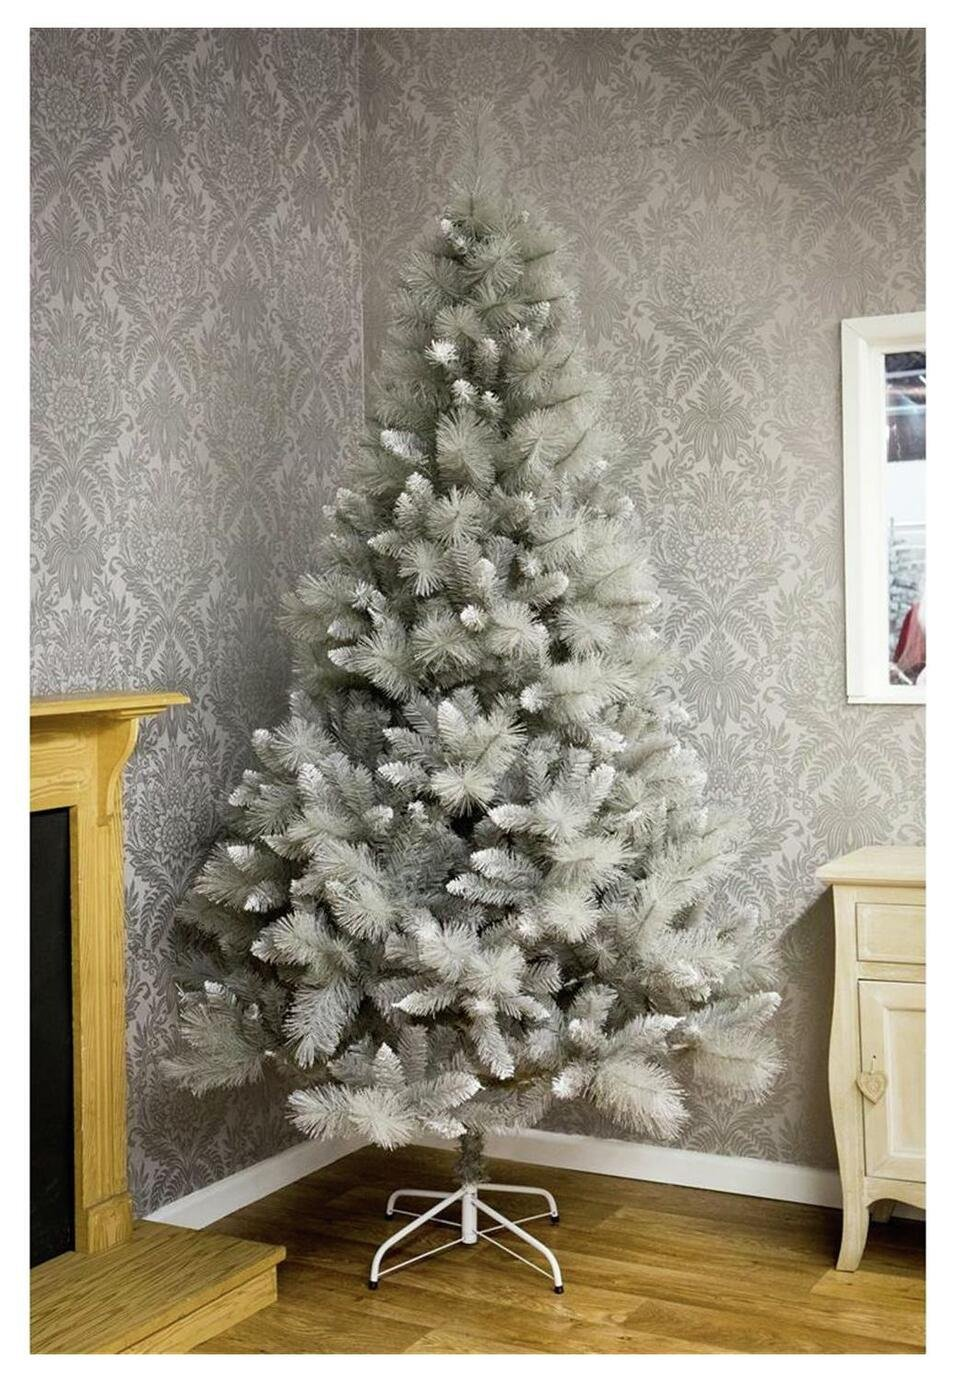 69ft-silver-tip-fir-christmas-tree-grey